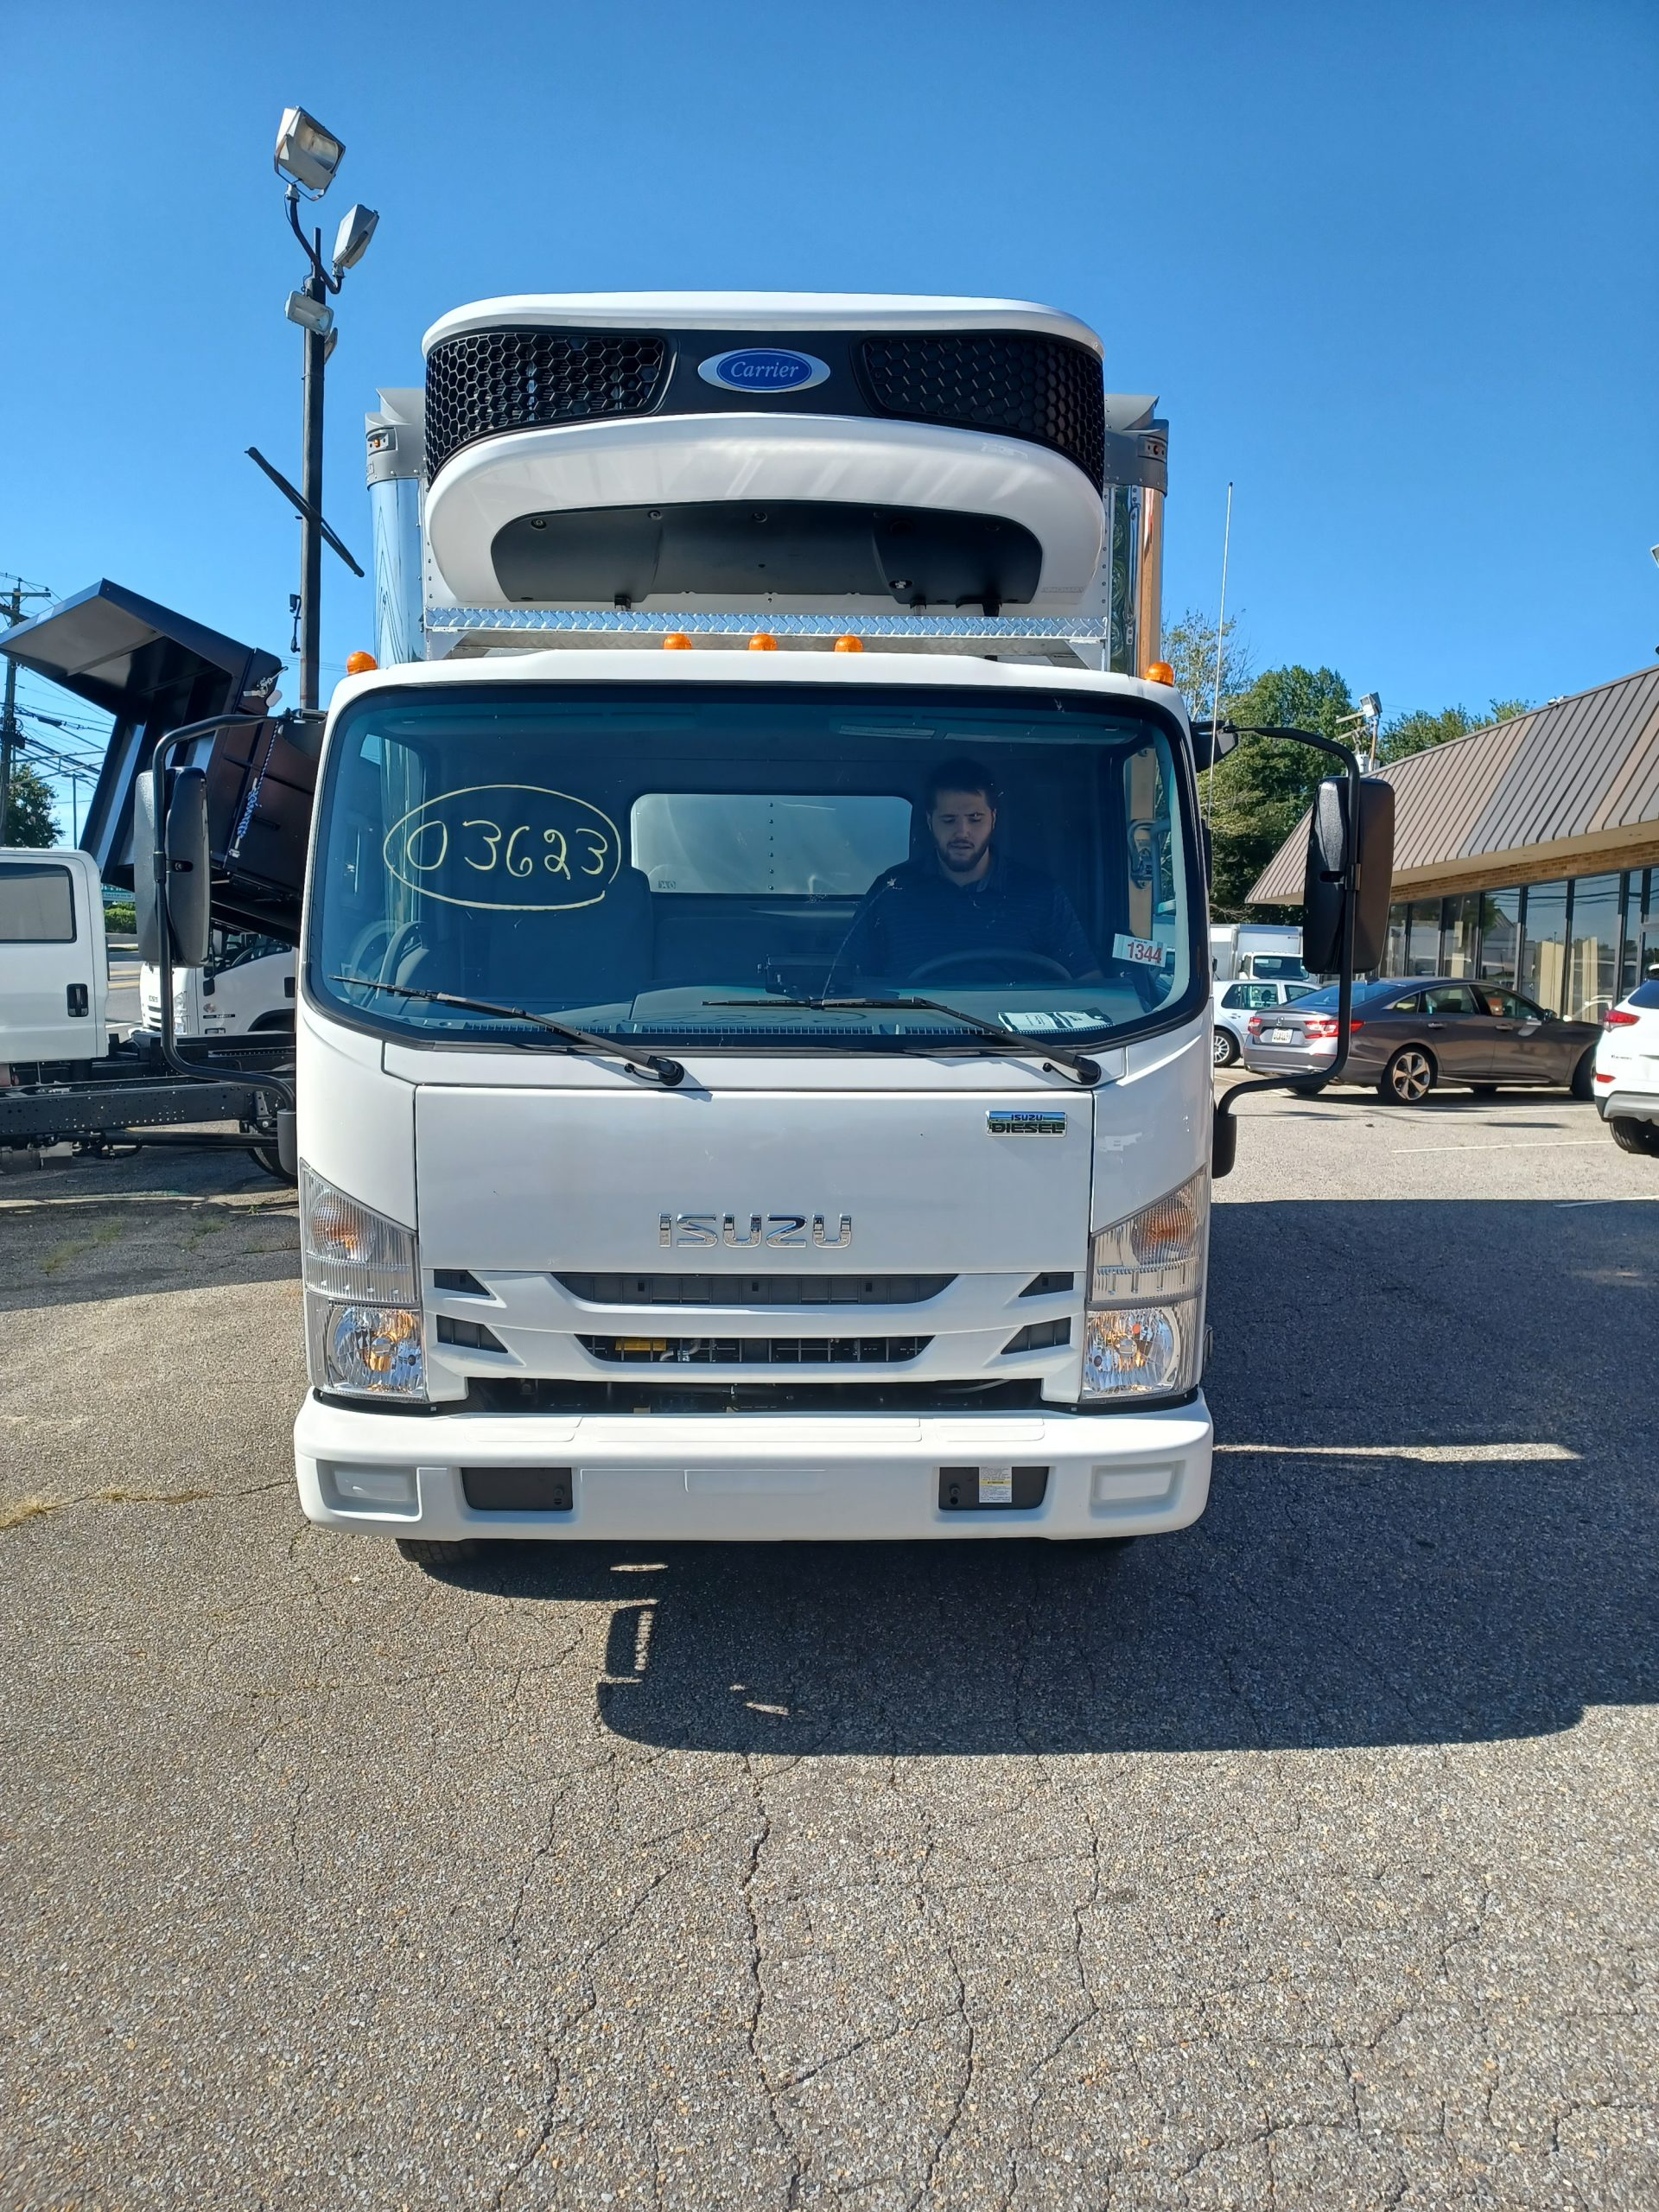 2022 NRR Refrigerated Truck Diesel 3 year Unlimited Mile Warranty 20210903_094430-scaled